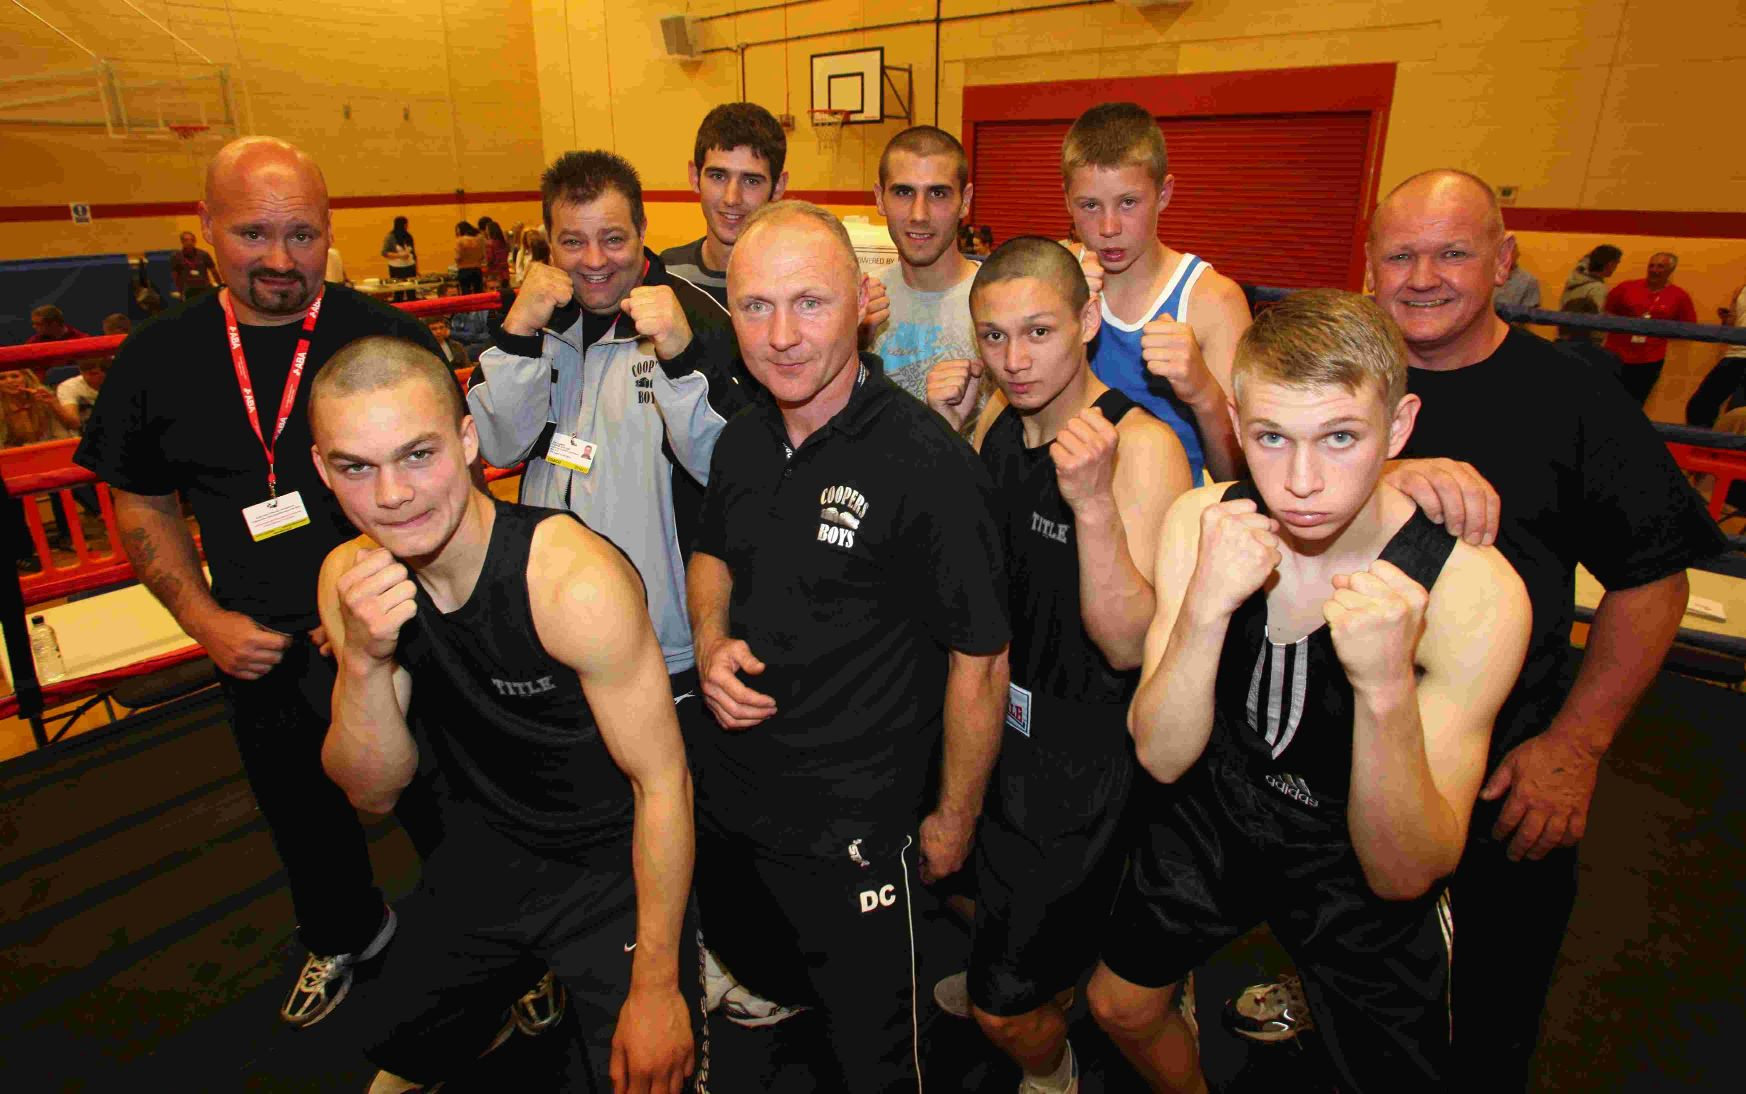 Coopers Boys boxers and coaches who took part in the show at the Empire Hall, Totton.